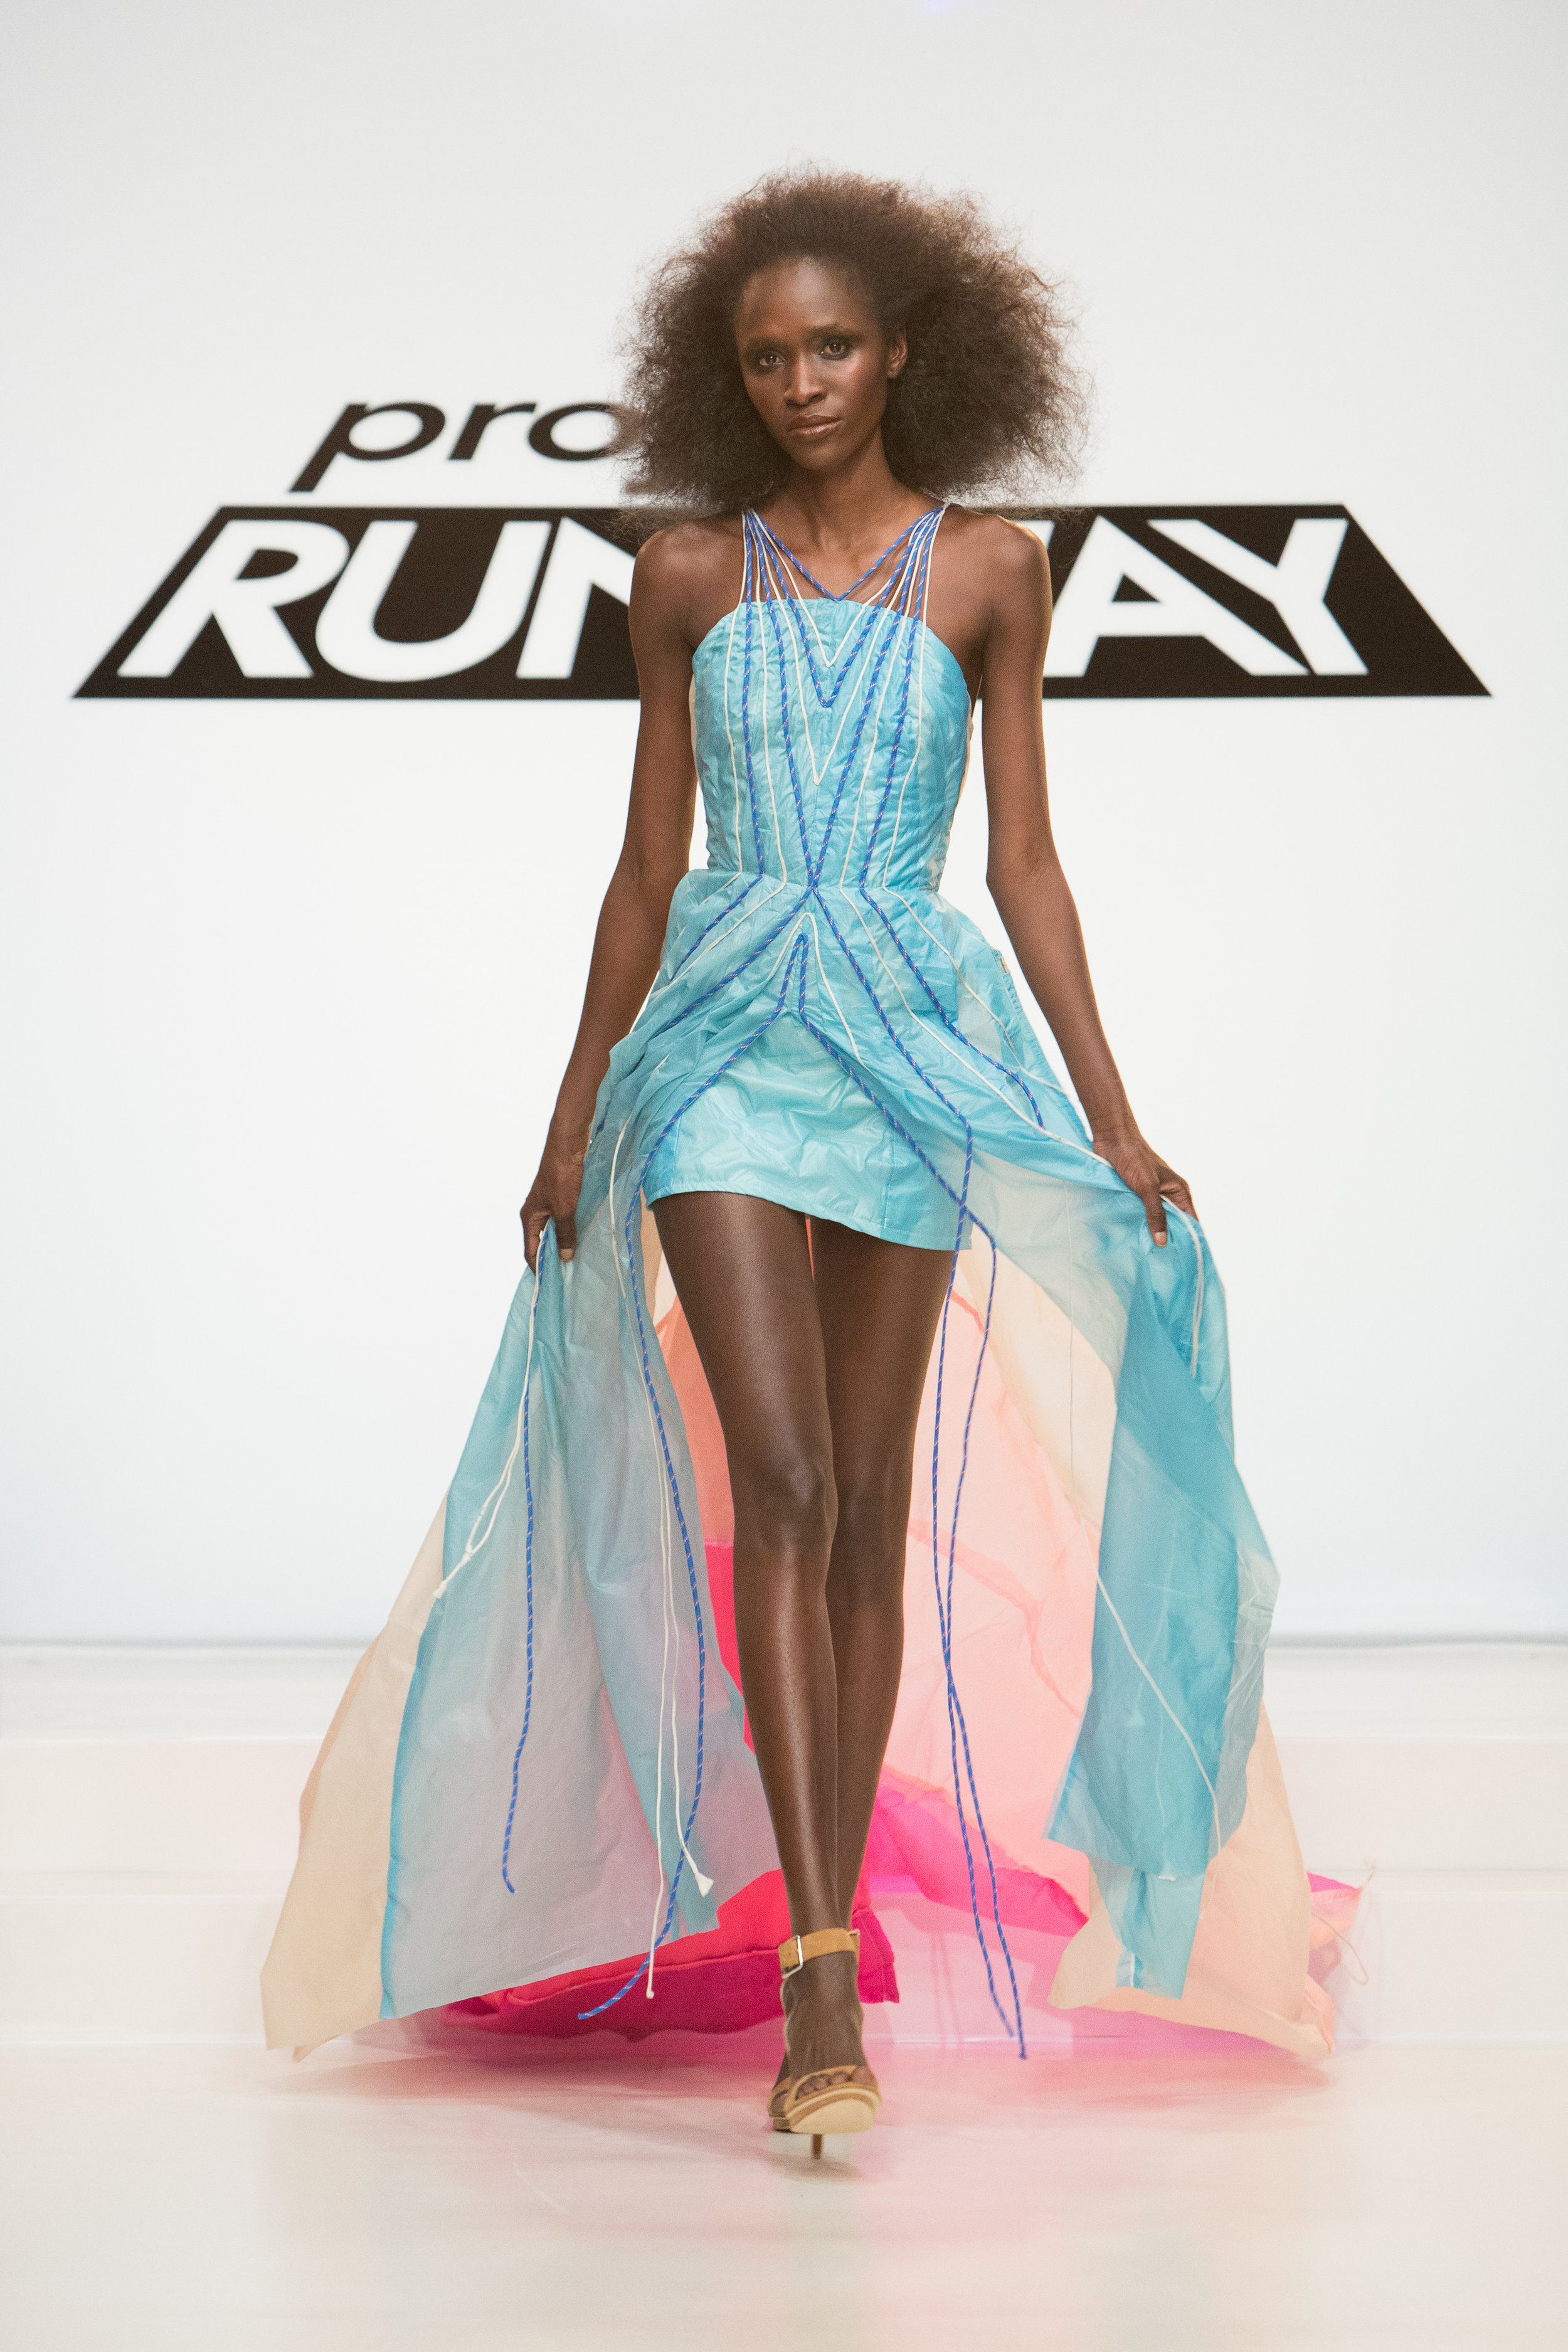 Now Casting - Email (projectrunwaycasting.castingcrane.com) to to learn more! The deadline to apply is July 18th.